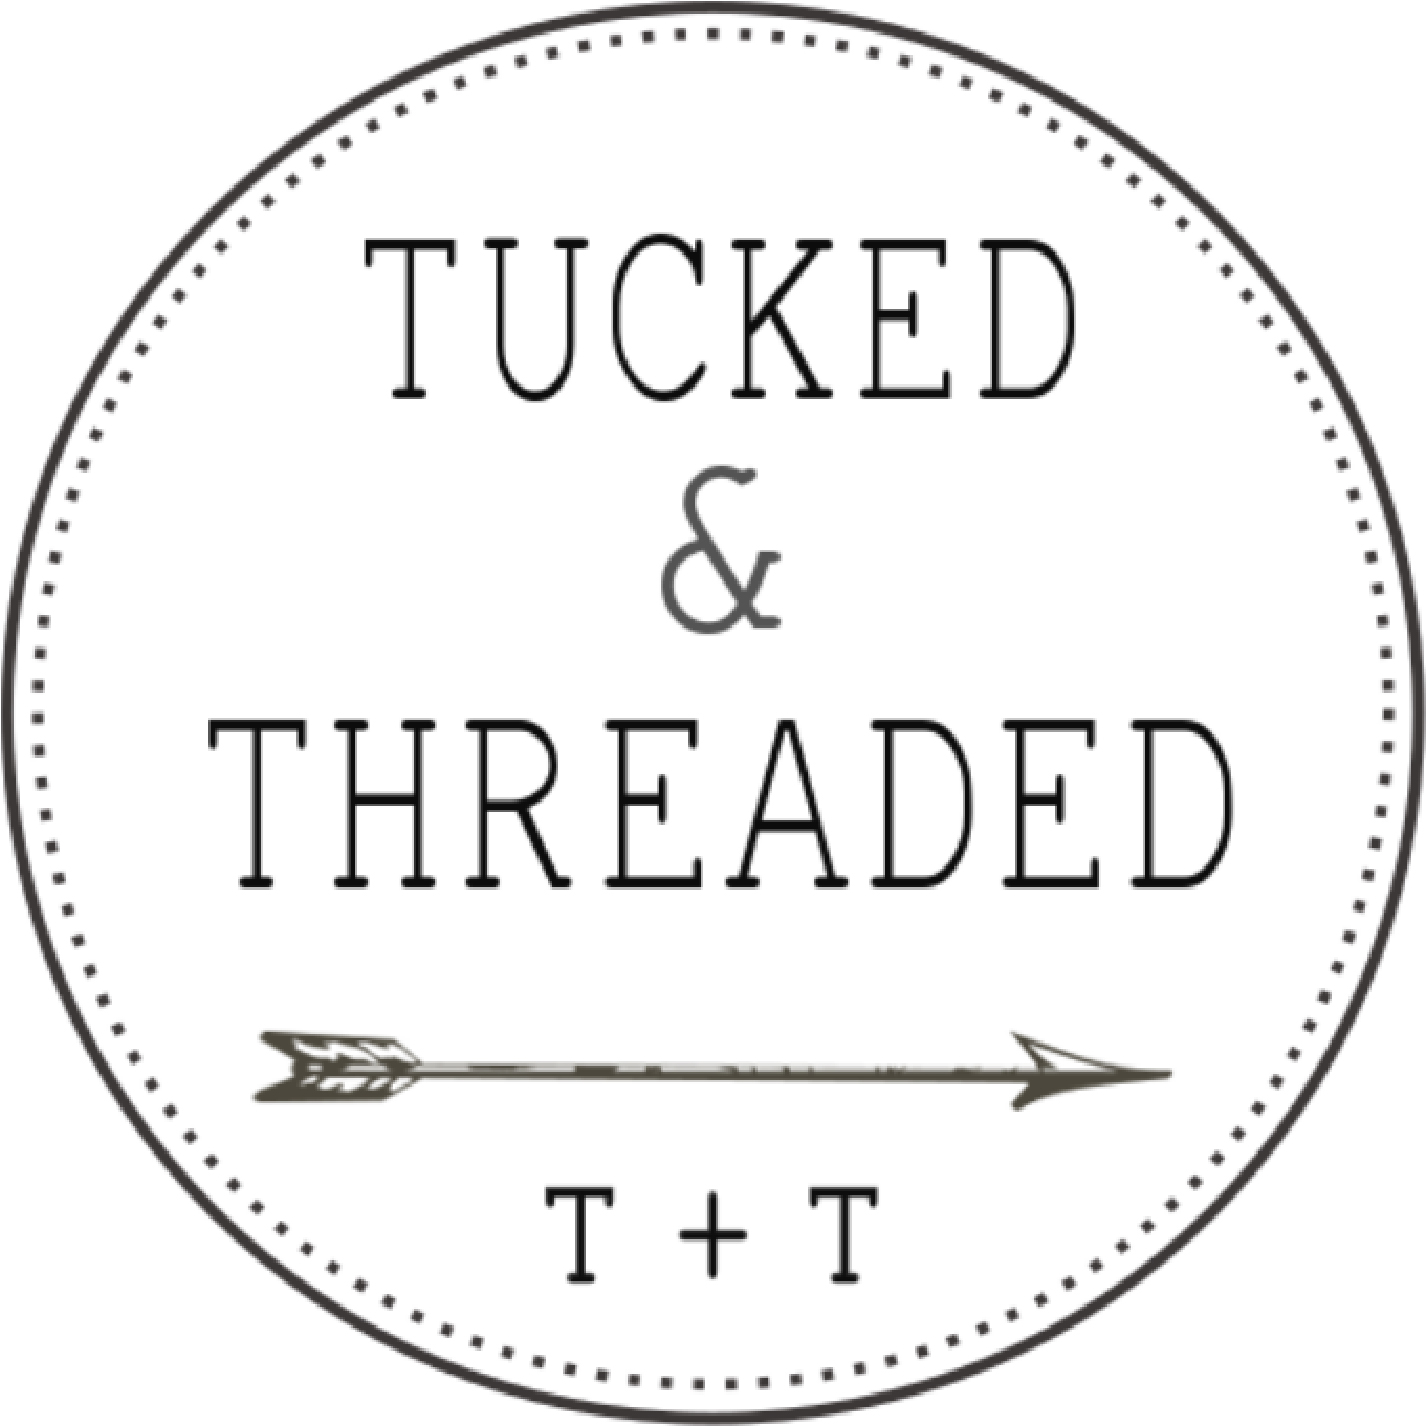 tucked & threaded.jpg